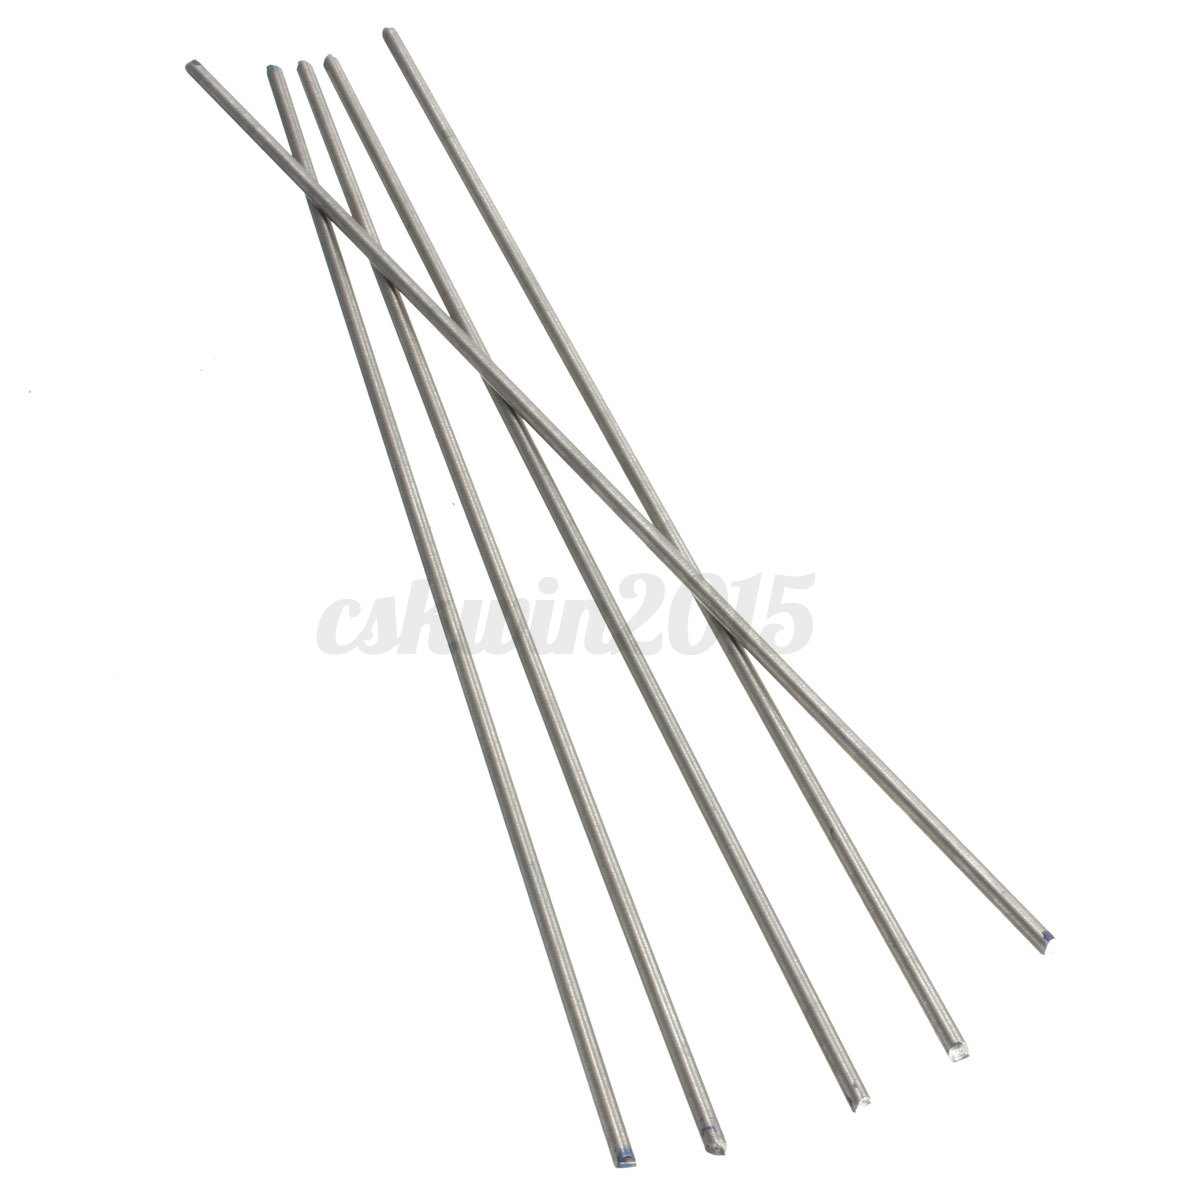 5pcs Titanium Ti Grade 5 Gr 5 Gr5 Metal Rod Diameter 3mm